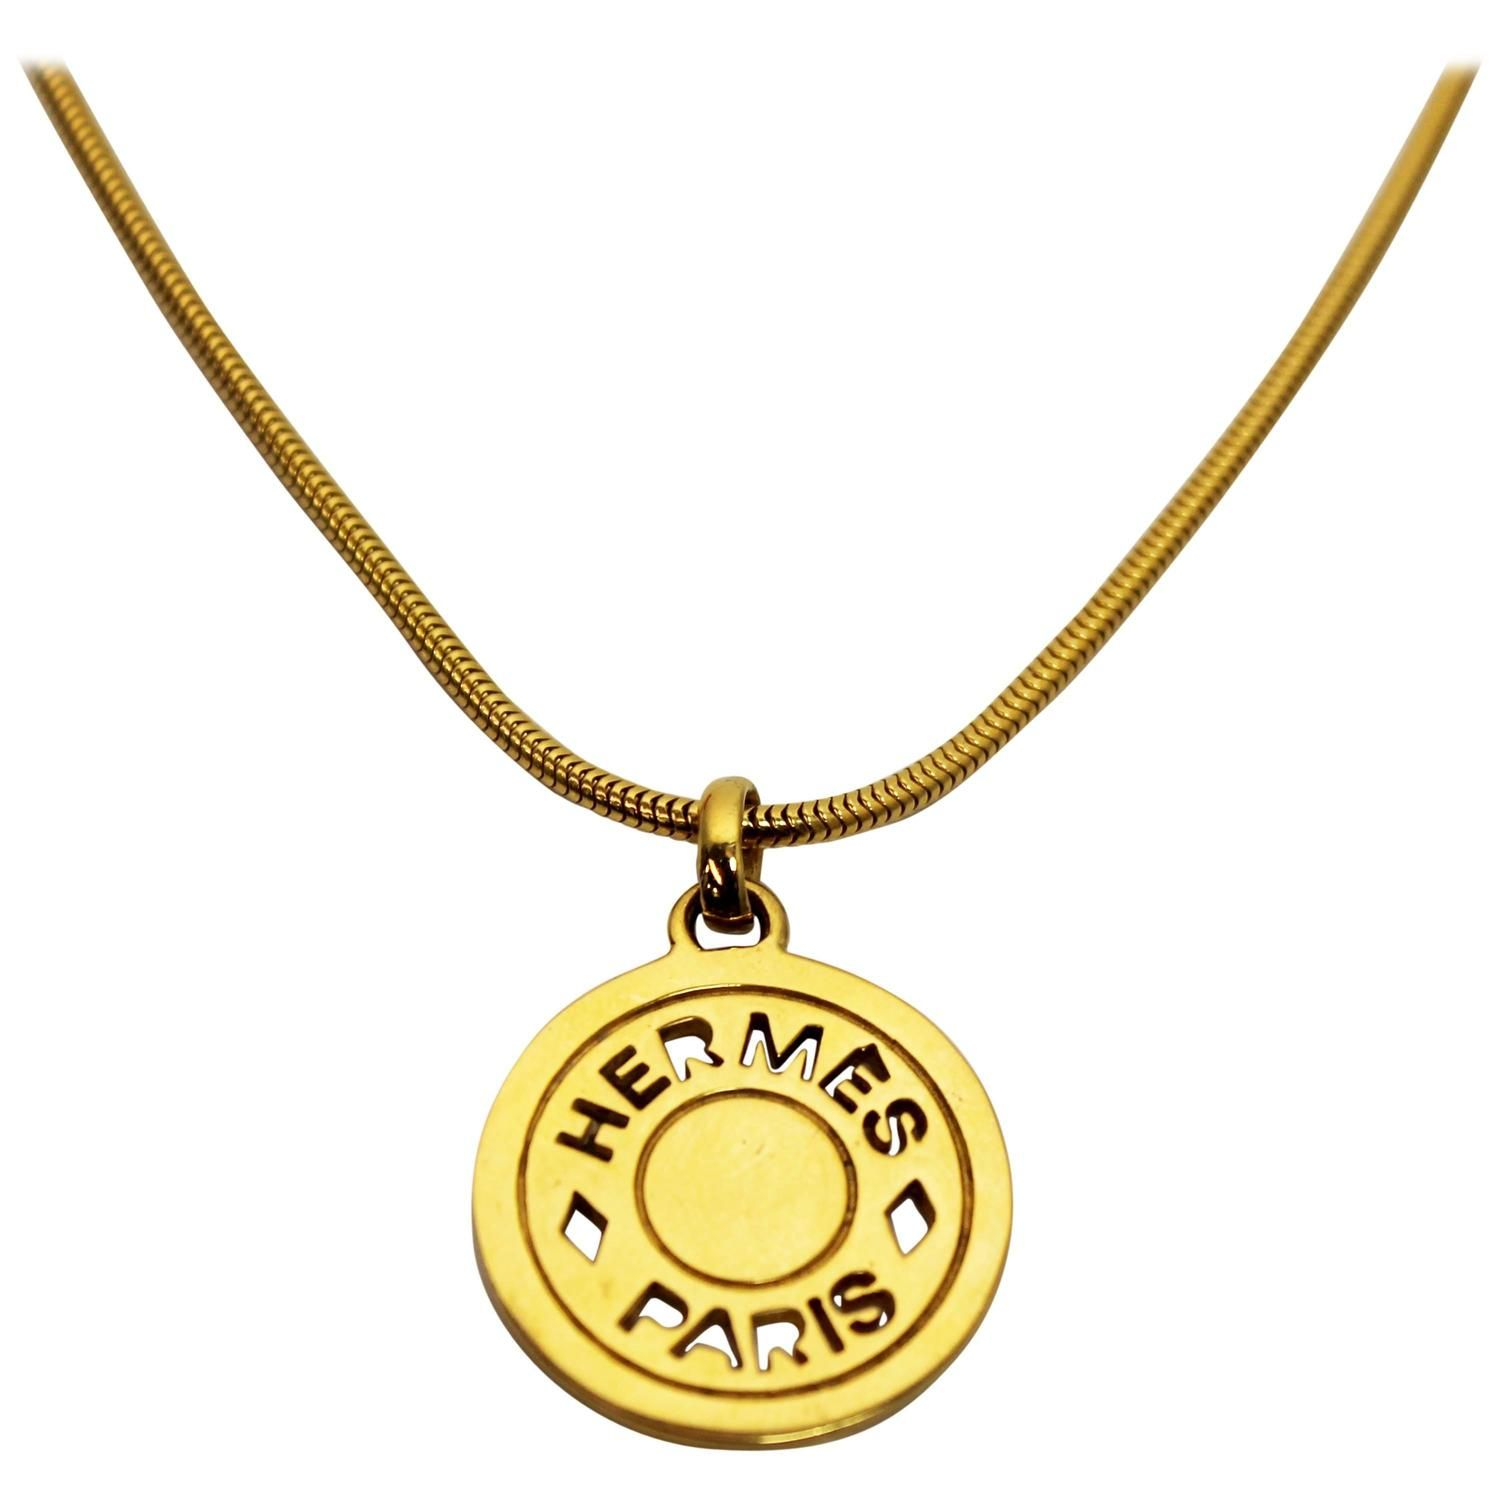 1990 S Hermes Gold Coin Pendant Necklace 1stdibs Com Coin Pendant Necklace Necklace Coin Pendant